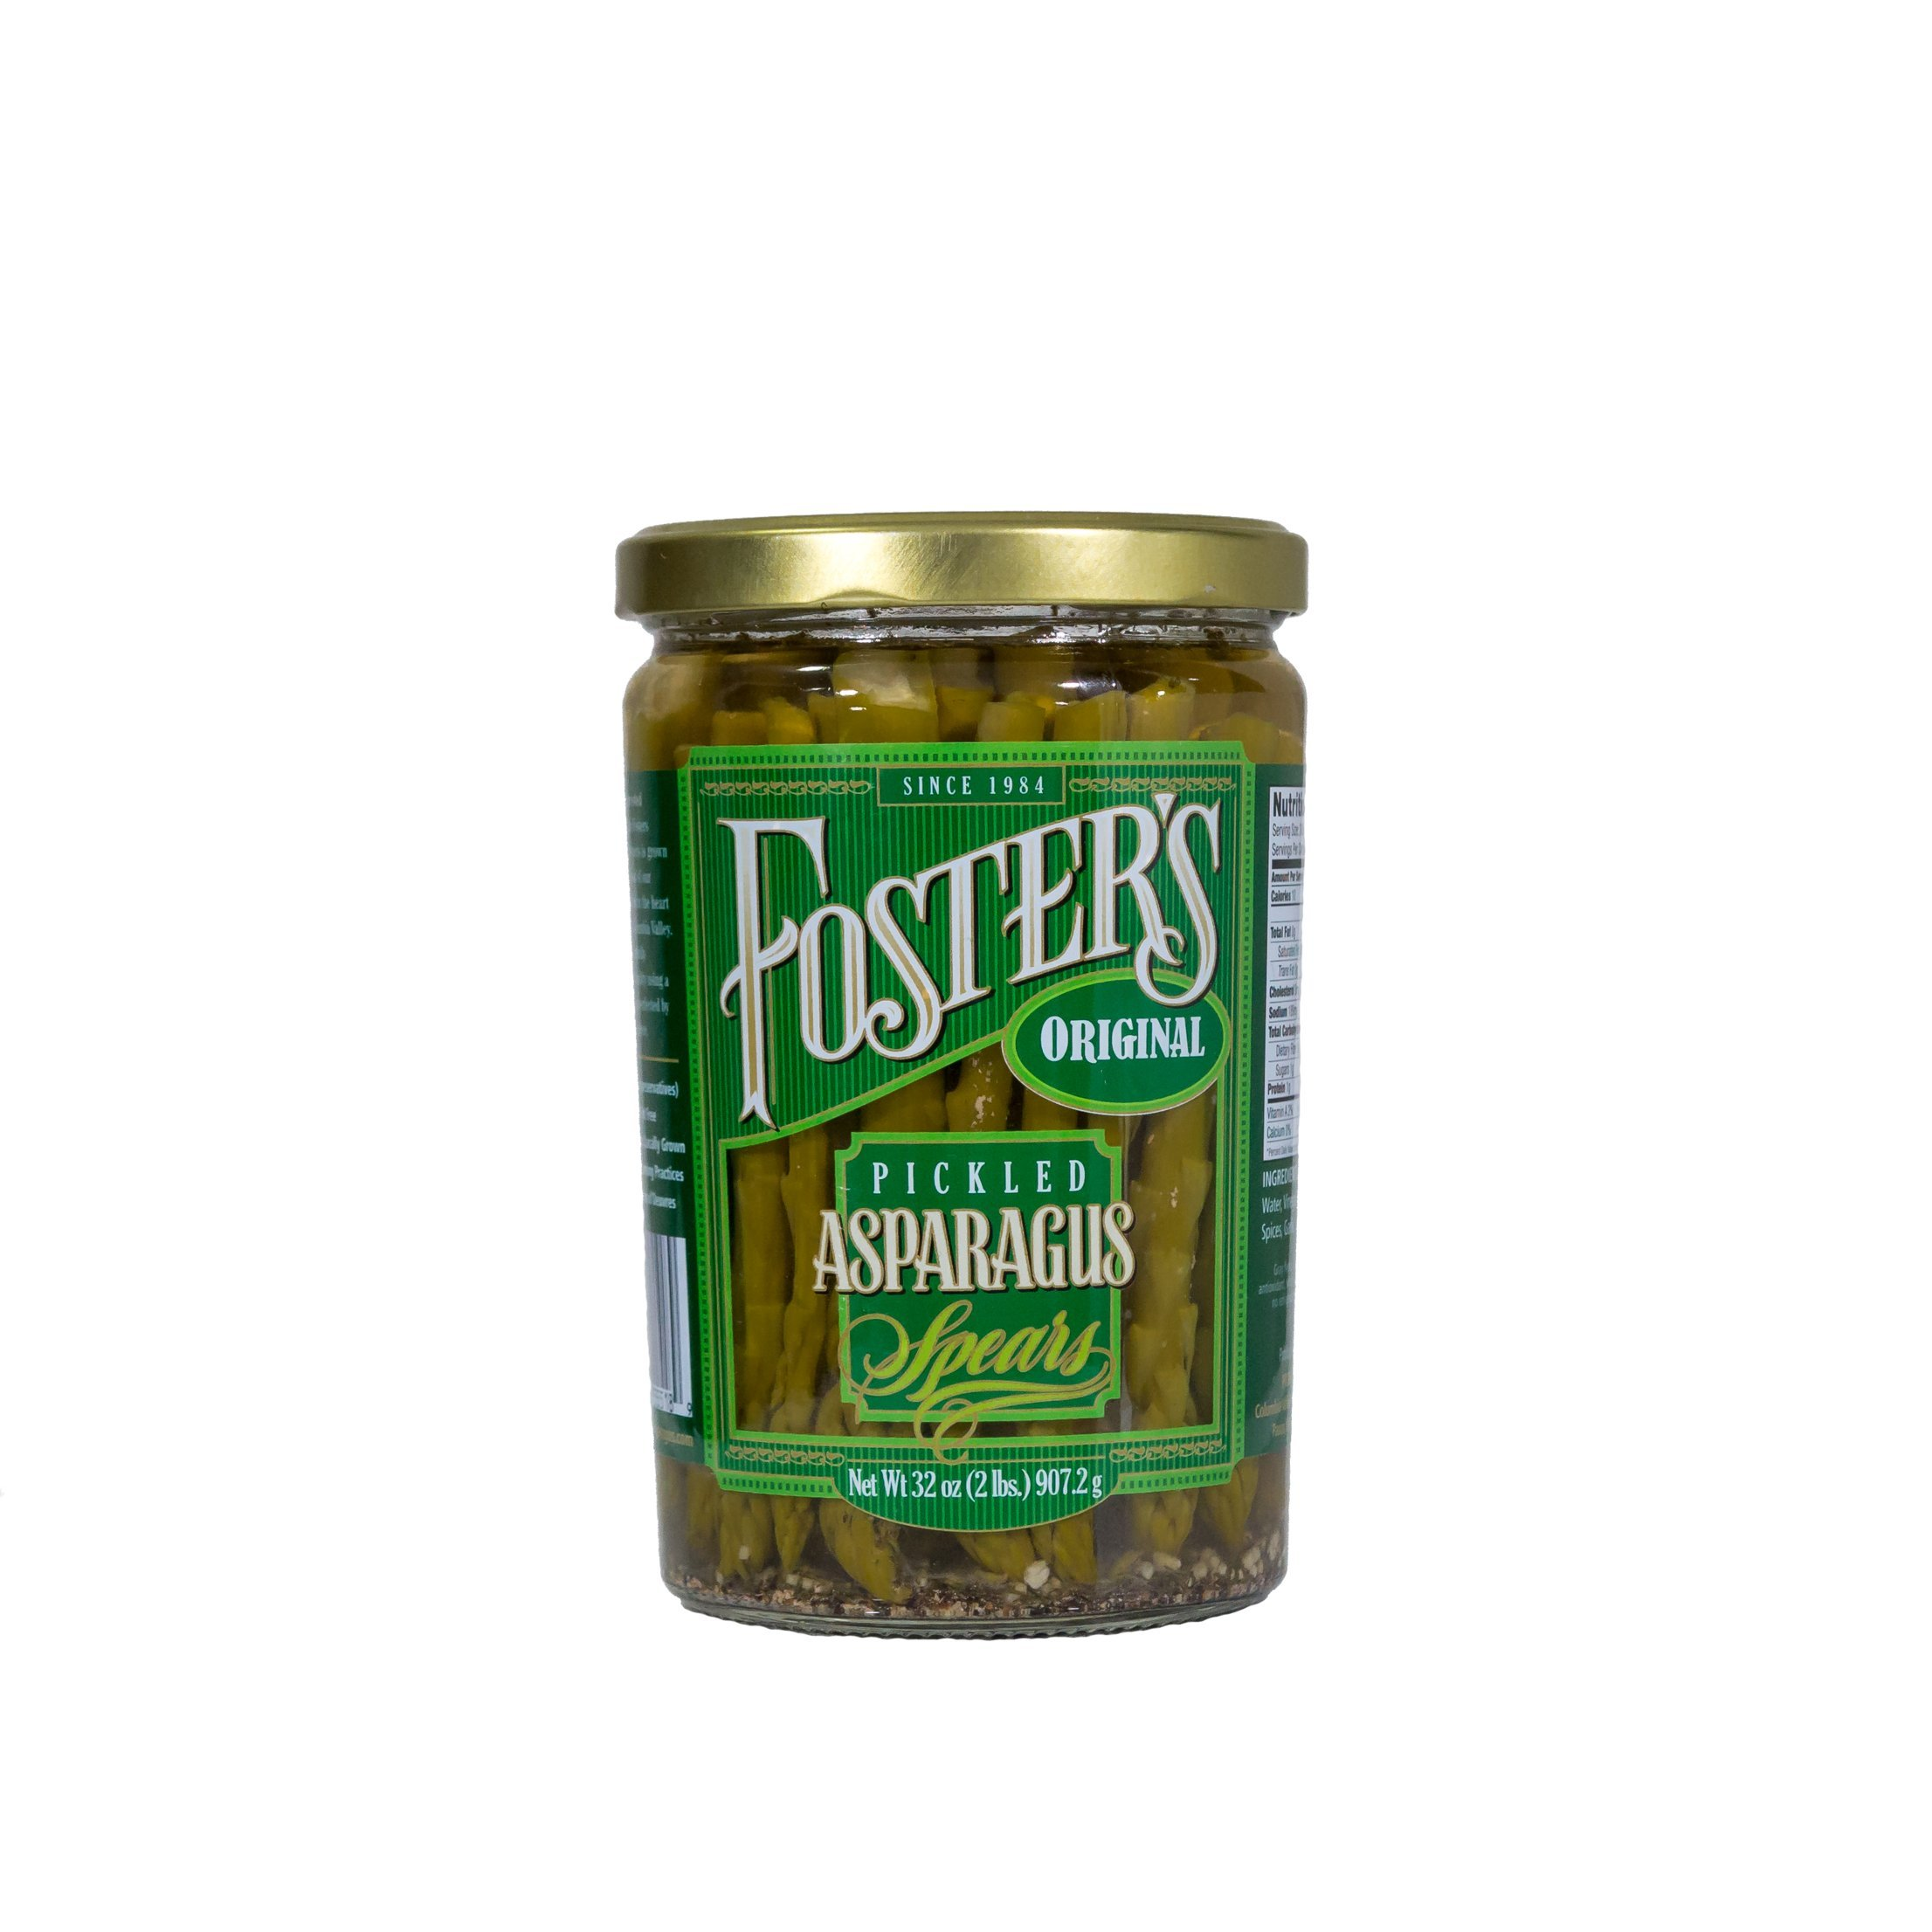 Foster's Pickled Products Asparagus Original, 32 oz.  (Pack of 3) by Foster's Pickled Products